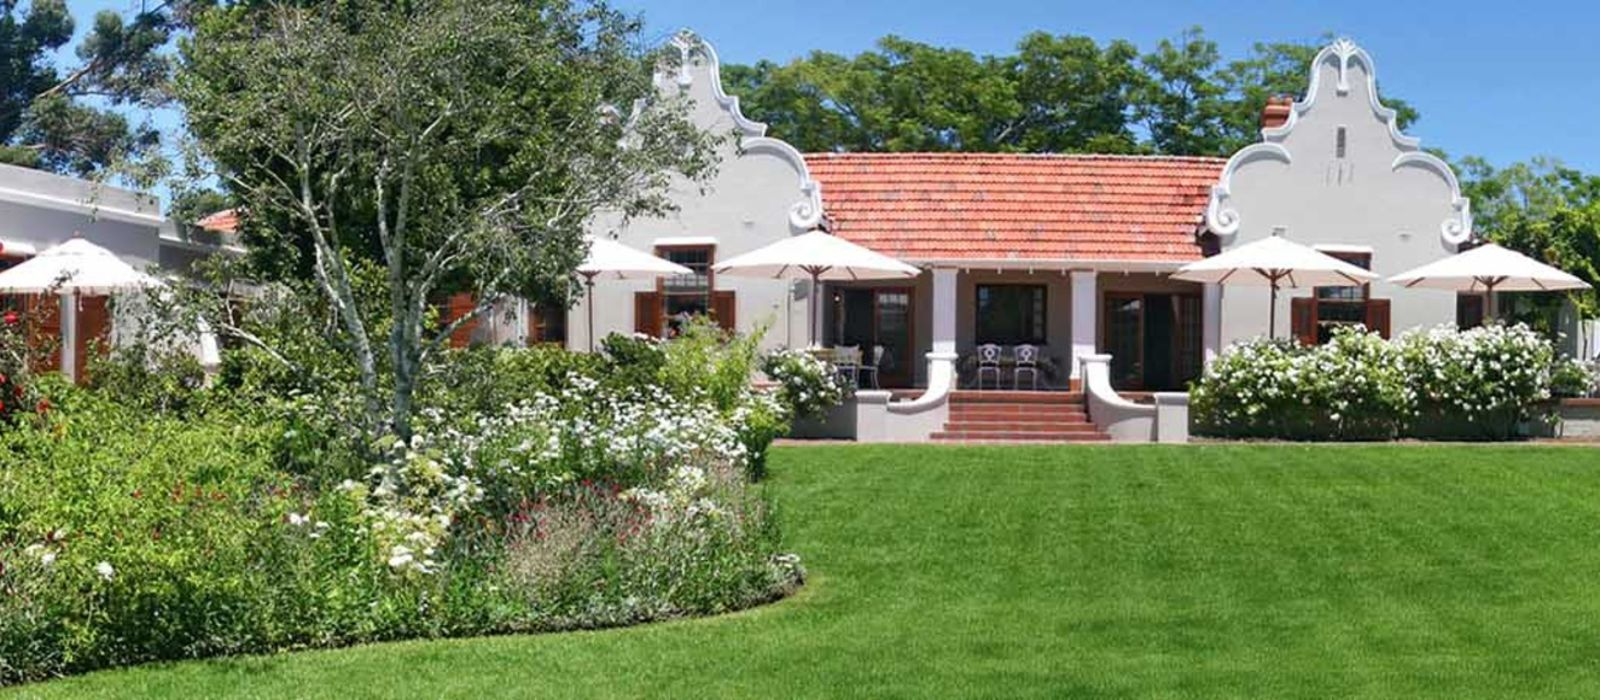 Hotel Glen Avon Lodge South Africa